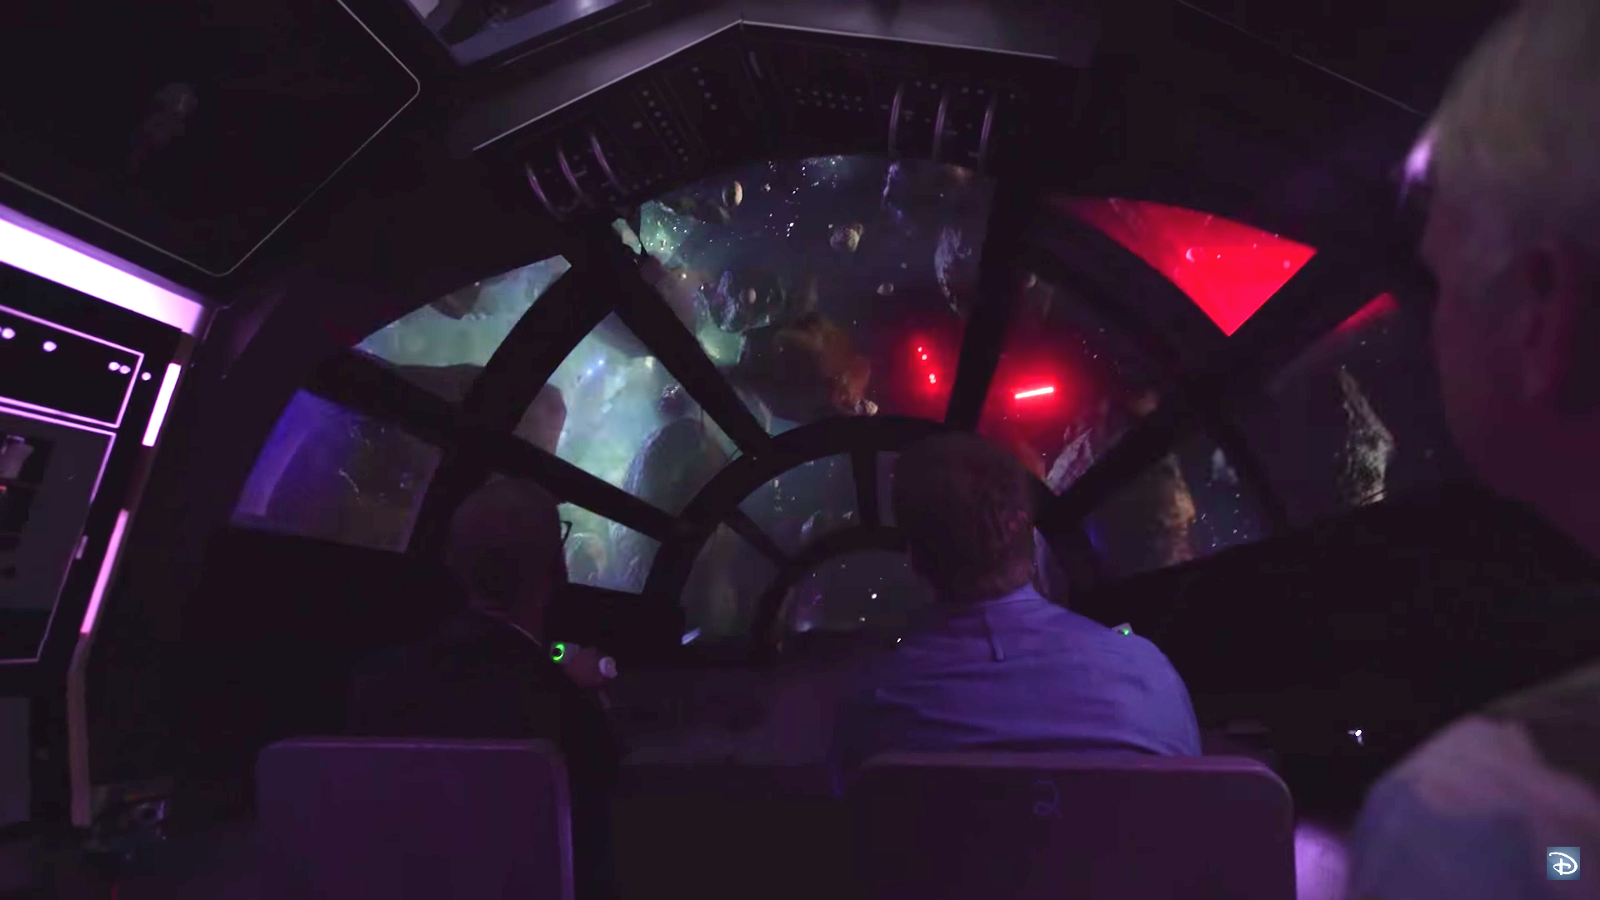 One Of The Lands Two Major Attractions Will Be An Interactive Simulator Ride That Could Easily Make Star Tours Seem Very Dated And Irrelevant